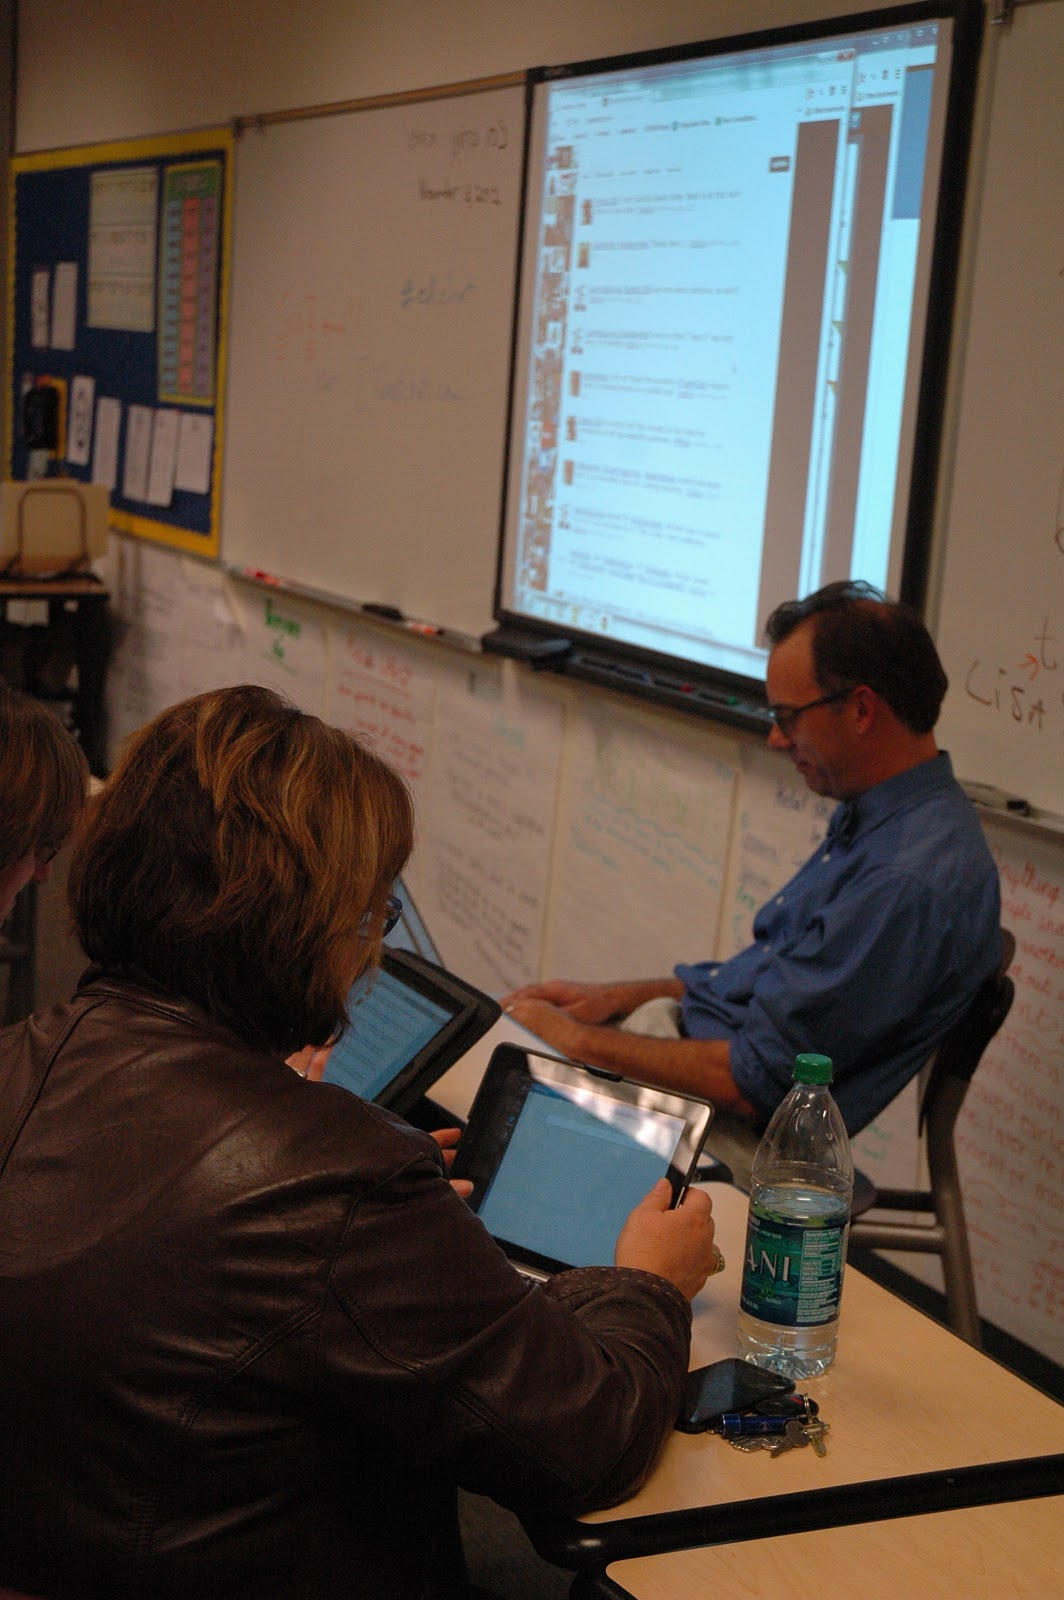 patue, palo alto technology using educators, palo alto twitter using educators, spitting distance from silicon valley, teachers and parents, teachers, parents, parents and edtech, edtech, educational technology, learning online, twitter chat, weekly conference series, professional development for teachers, professional organization for teachers